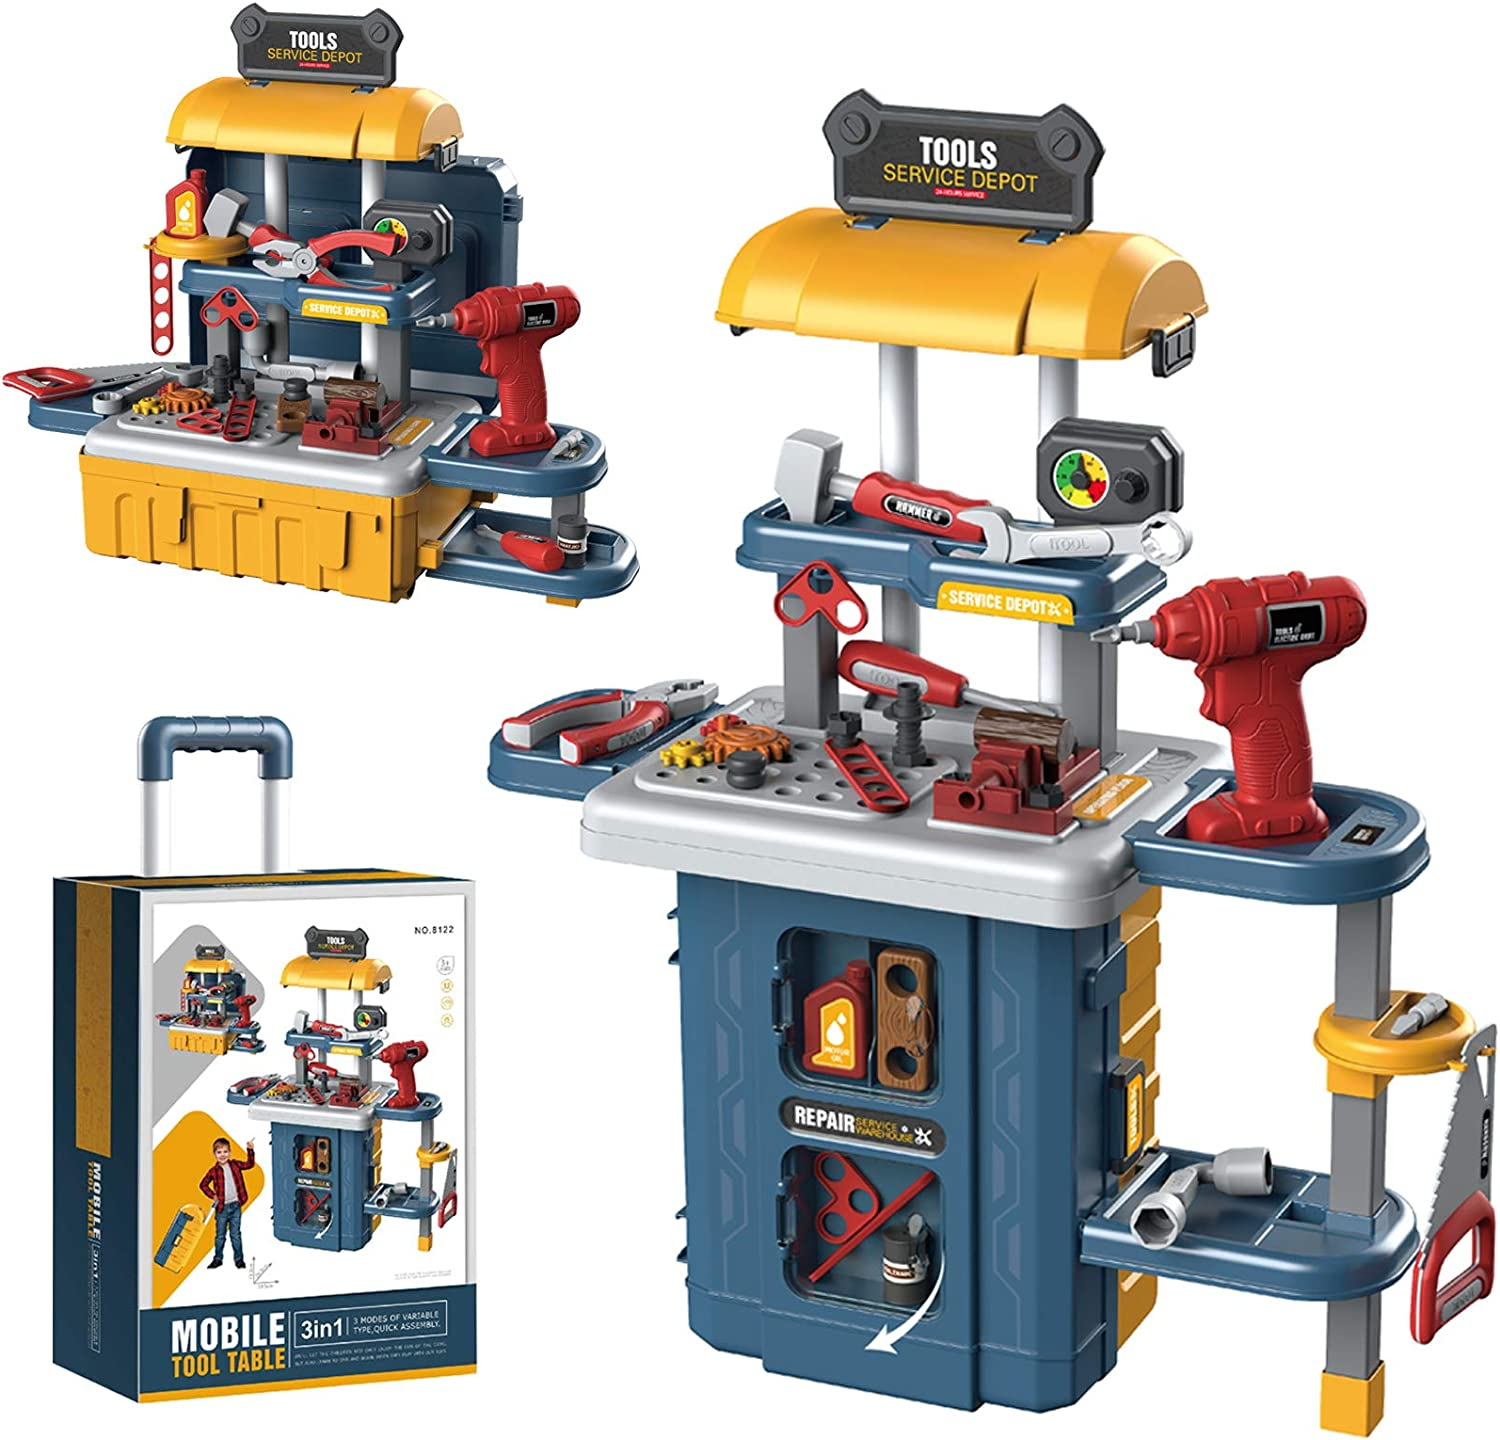 Kuopry Kids Tool Bench Set, Toddler Toys Workbench with Electric Drill & Realistic Tools, 3 in 1 Transformable Construction Workshop Toy for Boys & Girls Educational Pretend Play Gift for Children